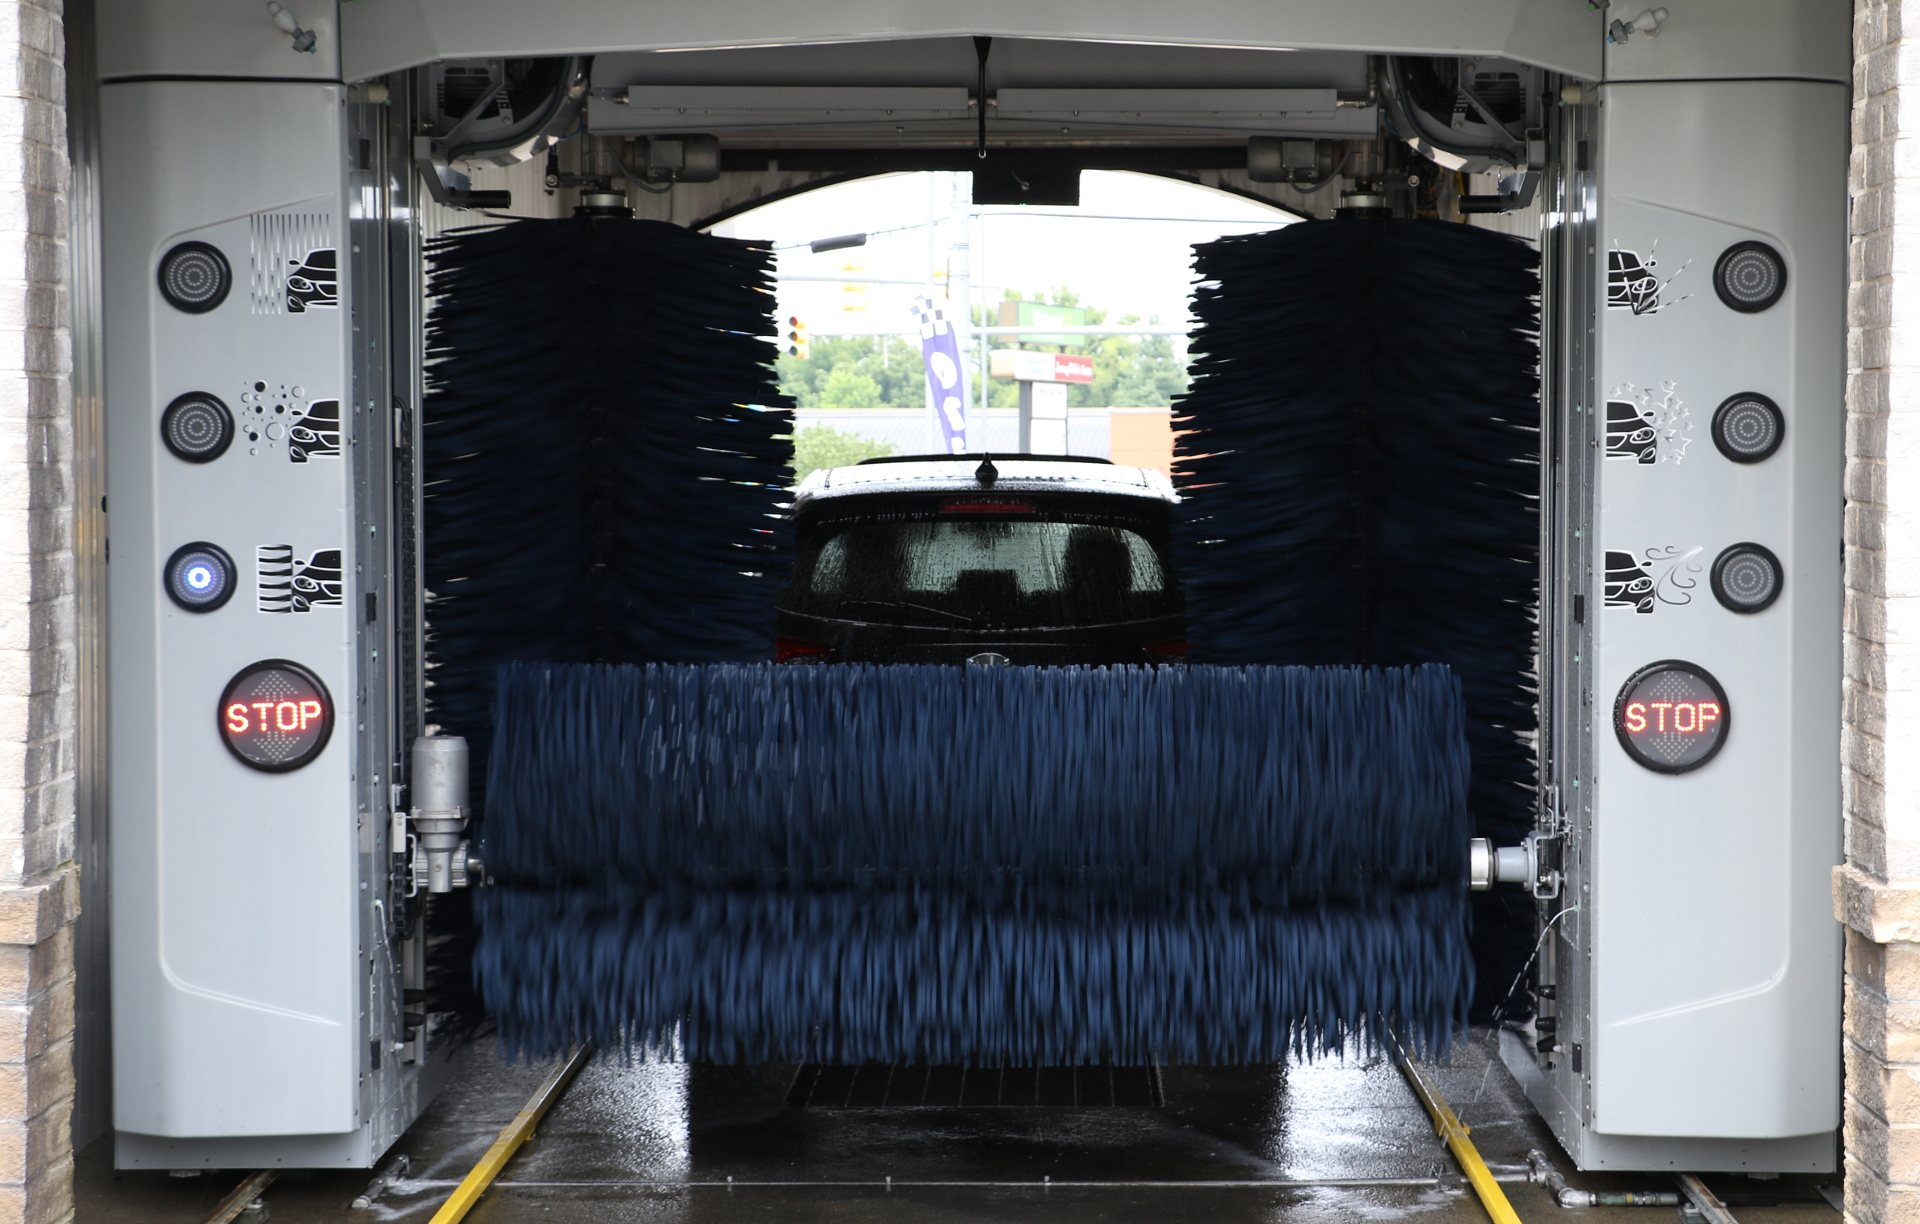 Image of the iWash car wash friction bays. iWash is a car wash in the Brentwood and Nashville area.